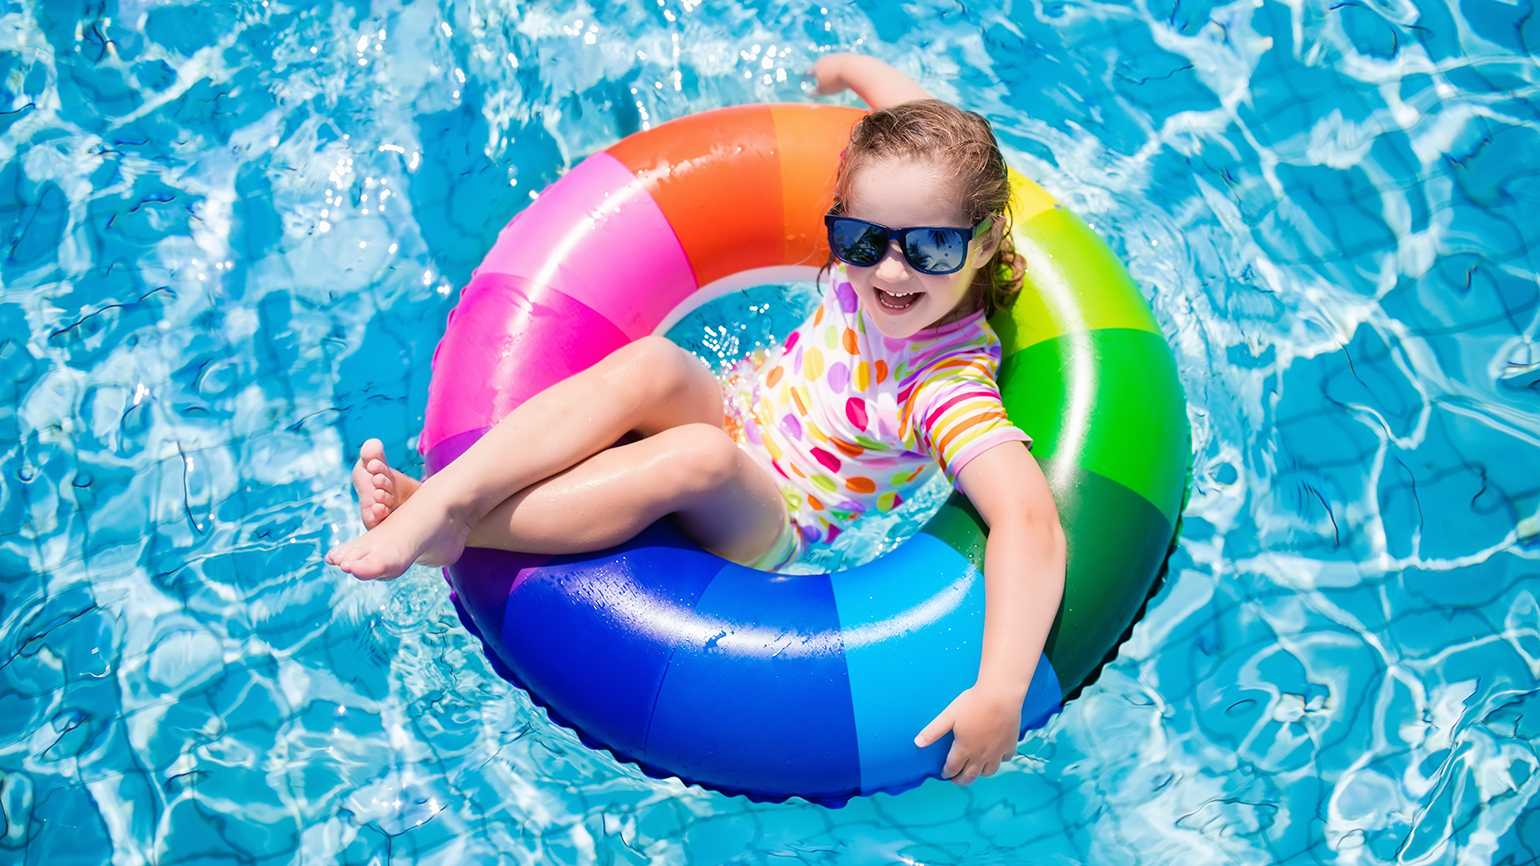 A young girl lounges on a float in a swimming pool